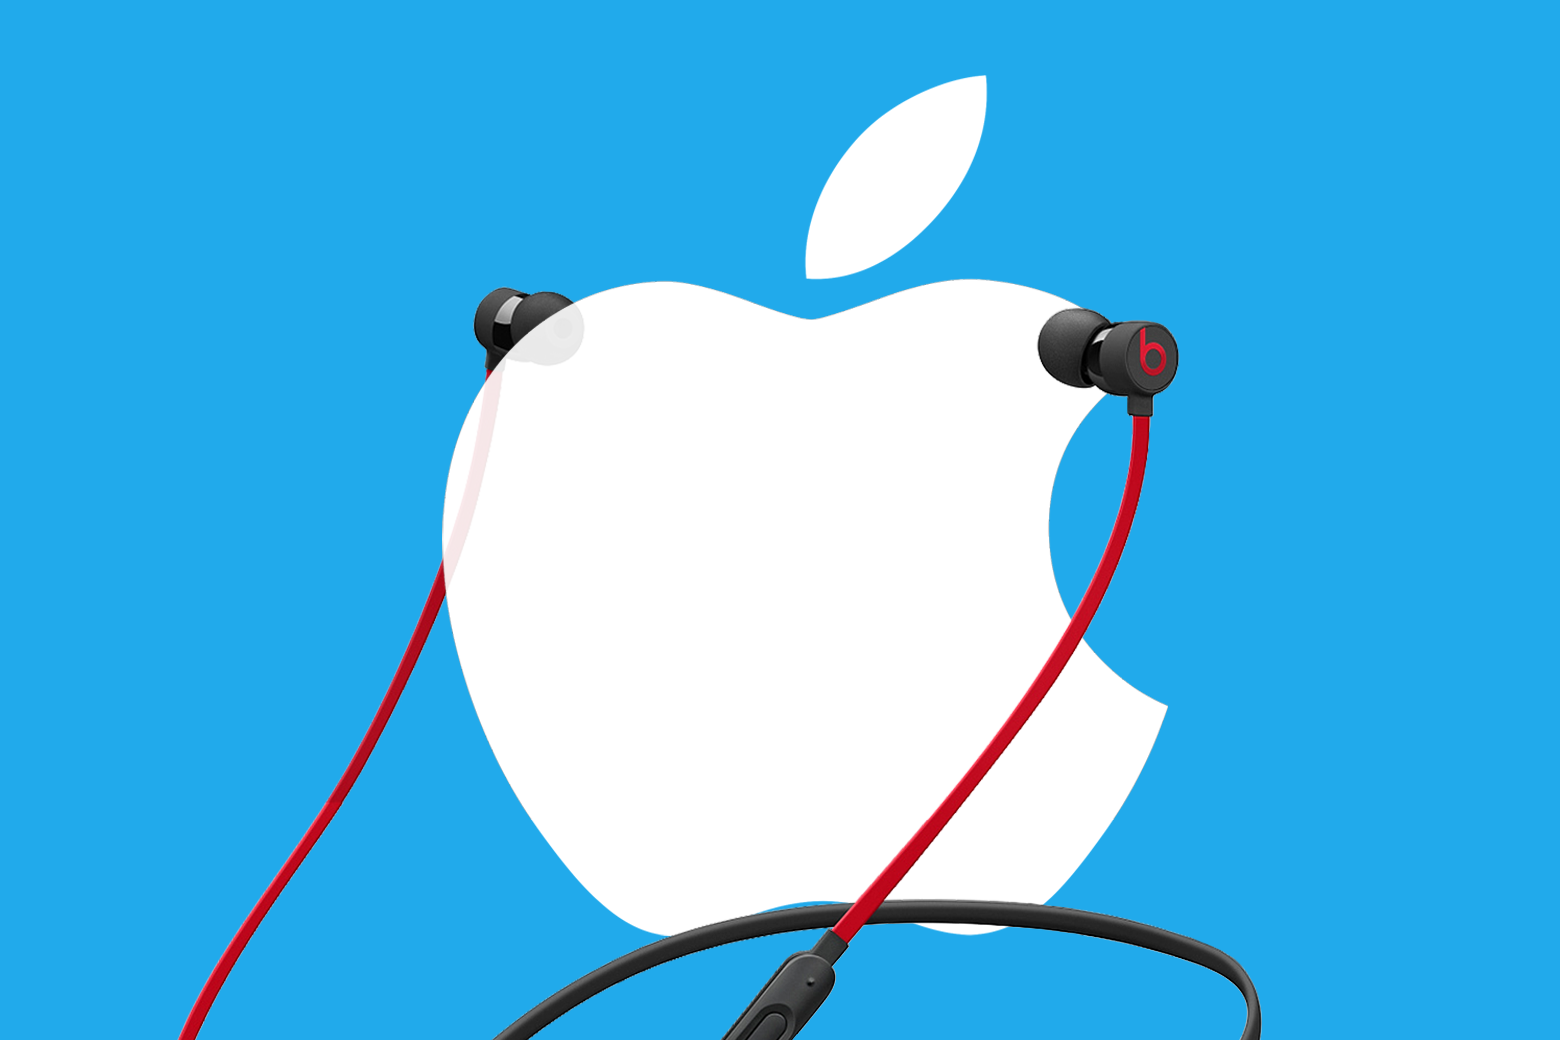 Photo illustration: headphones on top of the Apple logo.